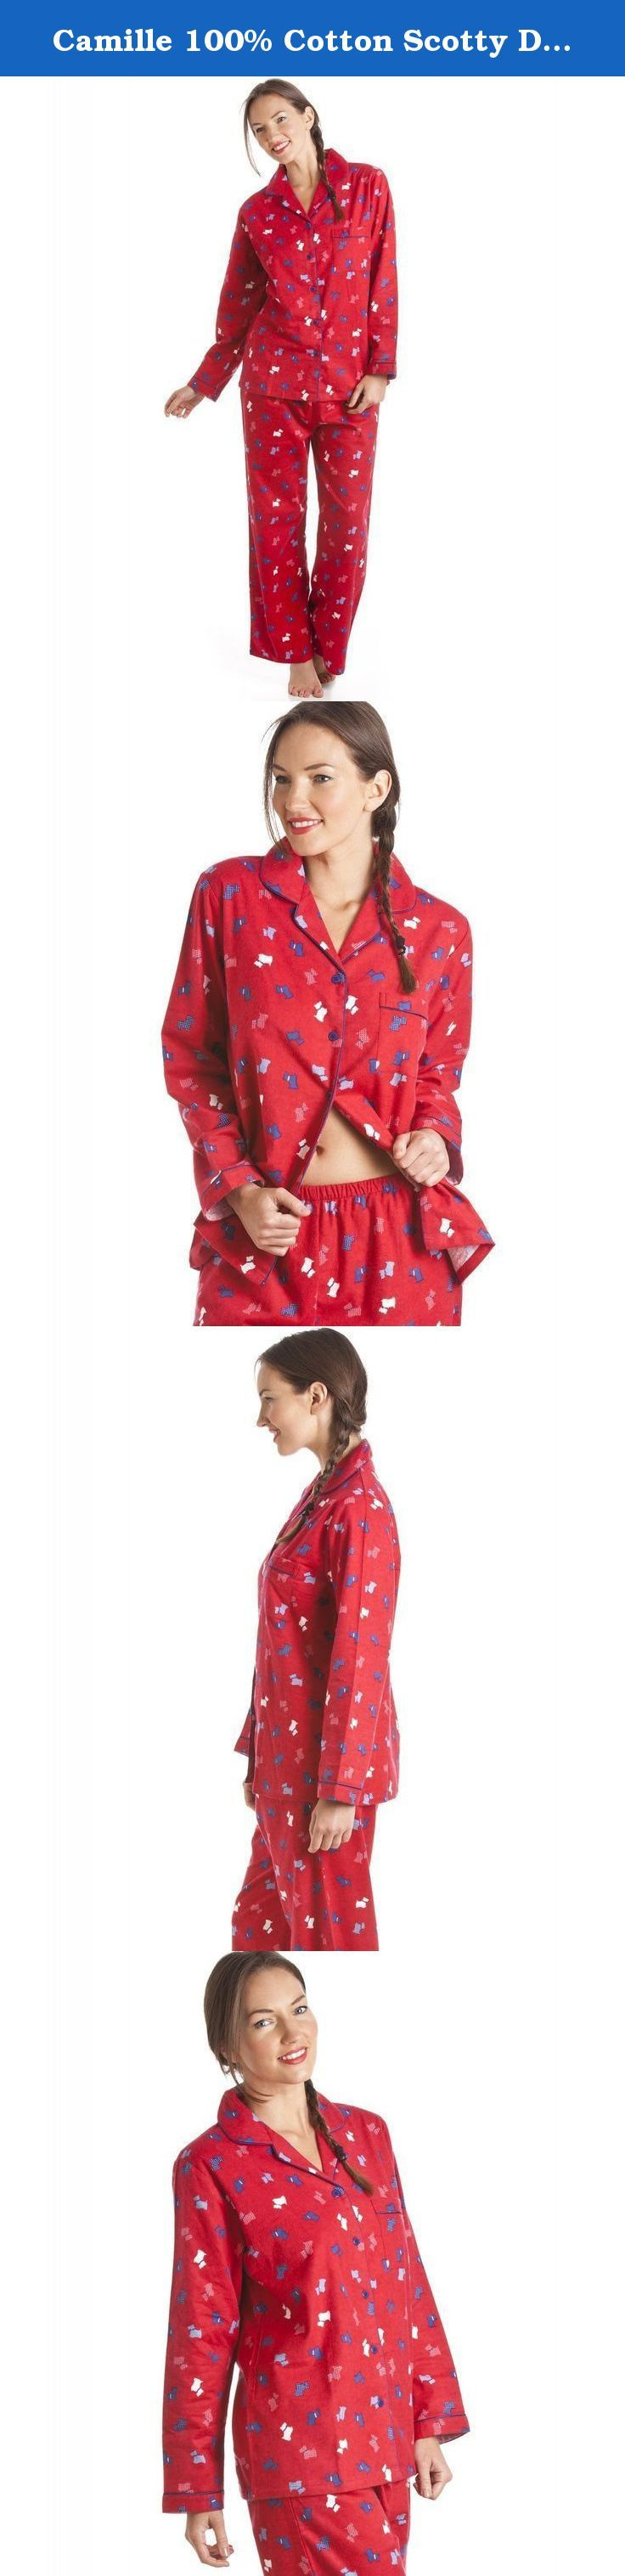 Camille 100% Cotton Scotty Dog Print Full Length Wincy Pyjama Set 10/12 RED. Luxury 100% cotton long sleeve pyjamas with full length bottoms. Featuring a Scotty dog print with contrasting piped edging around the neckline and cuffs. Part of our new range of 100% Cotton nightwear in a wide range of colours and designs. .